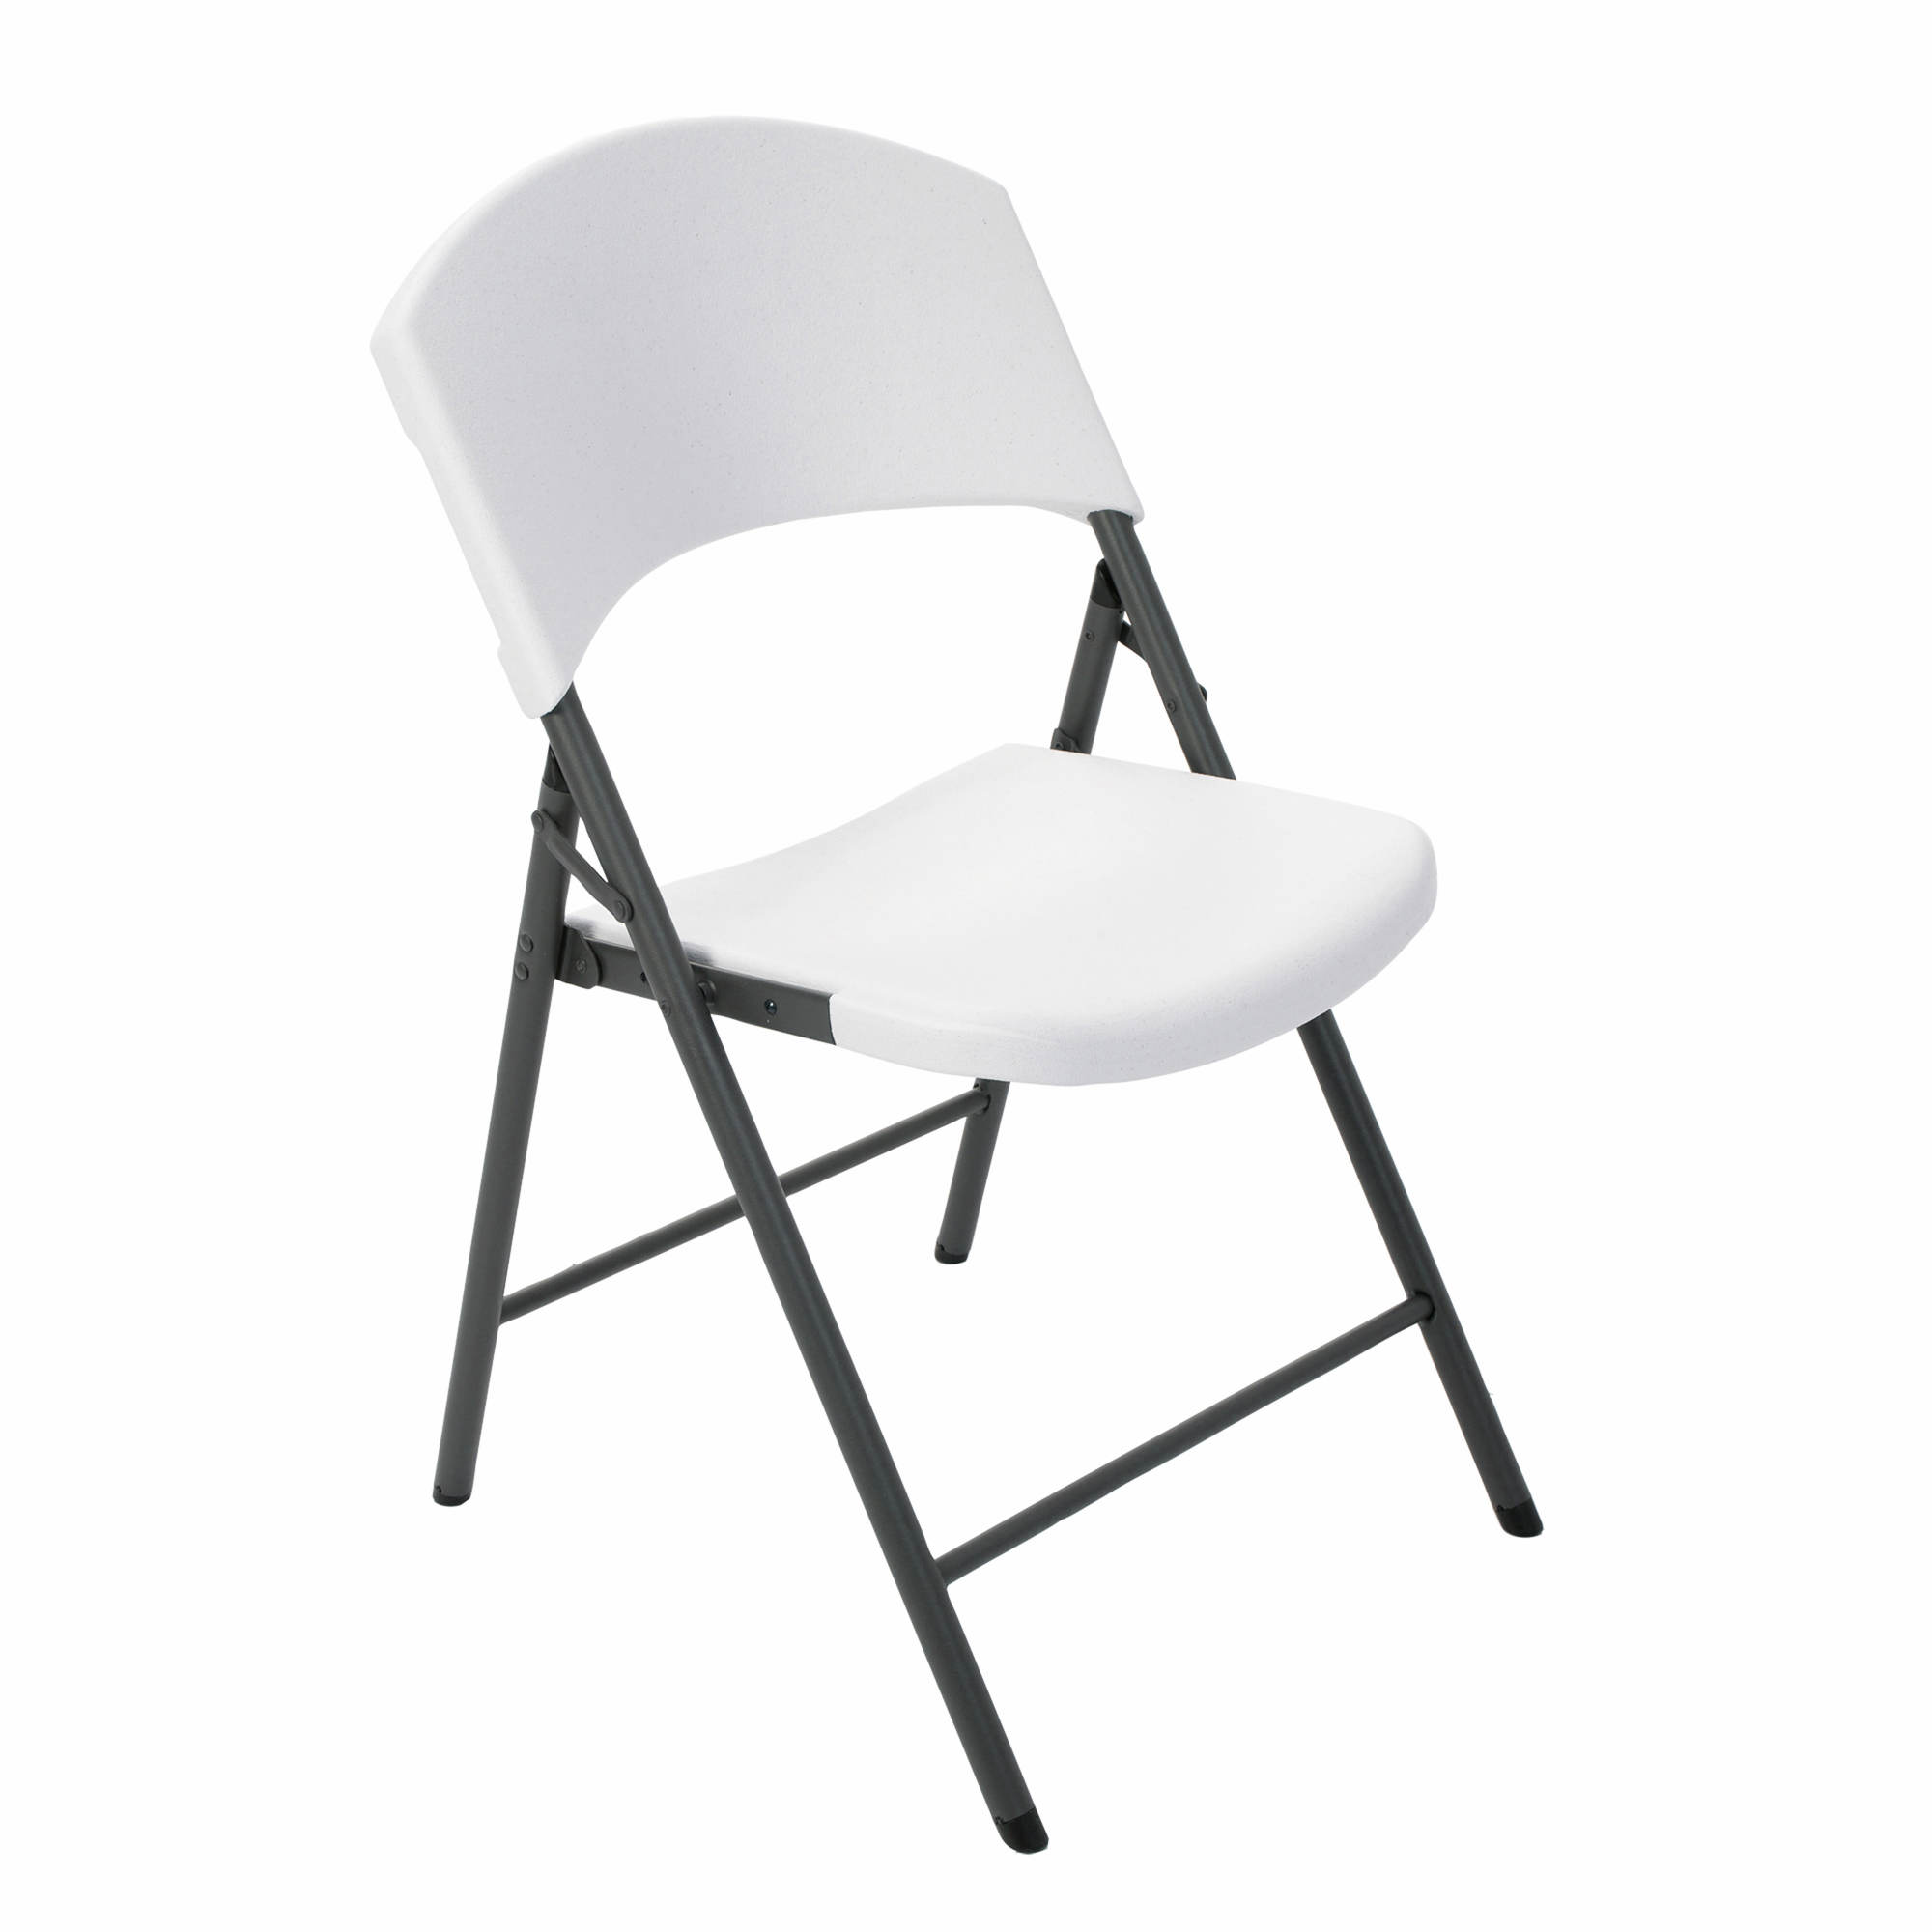 Lifetime Folding Chairs, 32 pk. - White